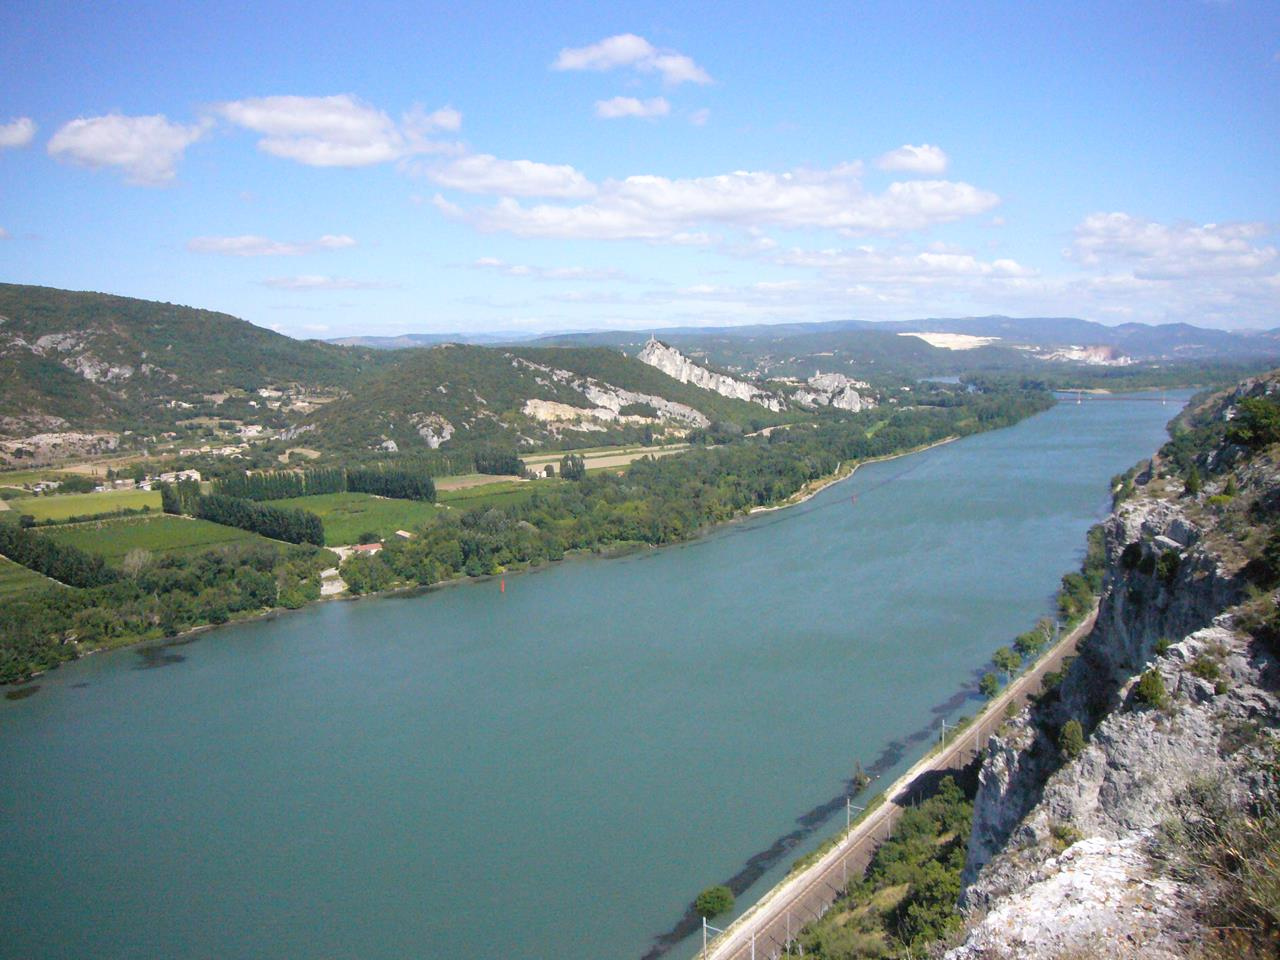 Cute Wallpapers Of Love Hearts Travel Guide To Rhone River Europe Xcitefun Net